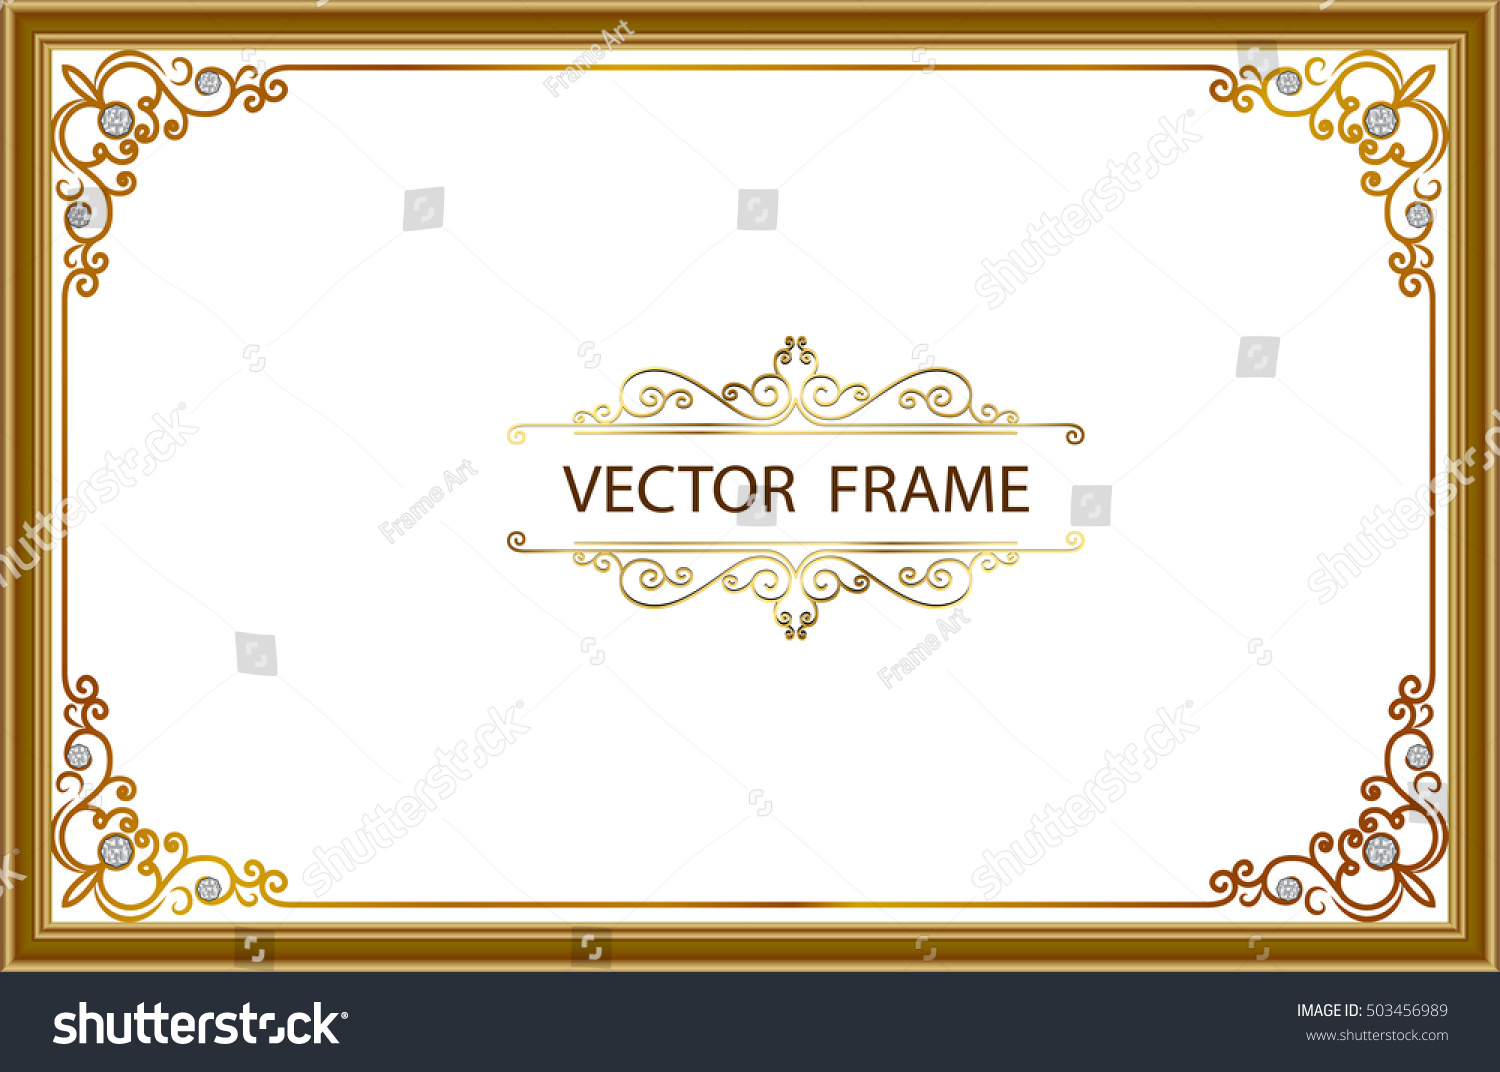 Royalty-free Gold photo frames with corner thailand… #503456989 ...